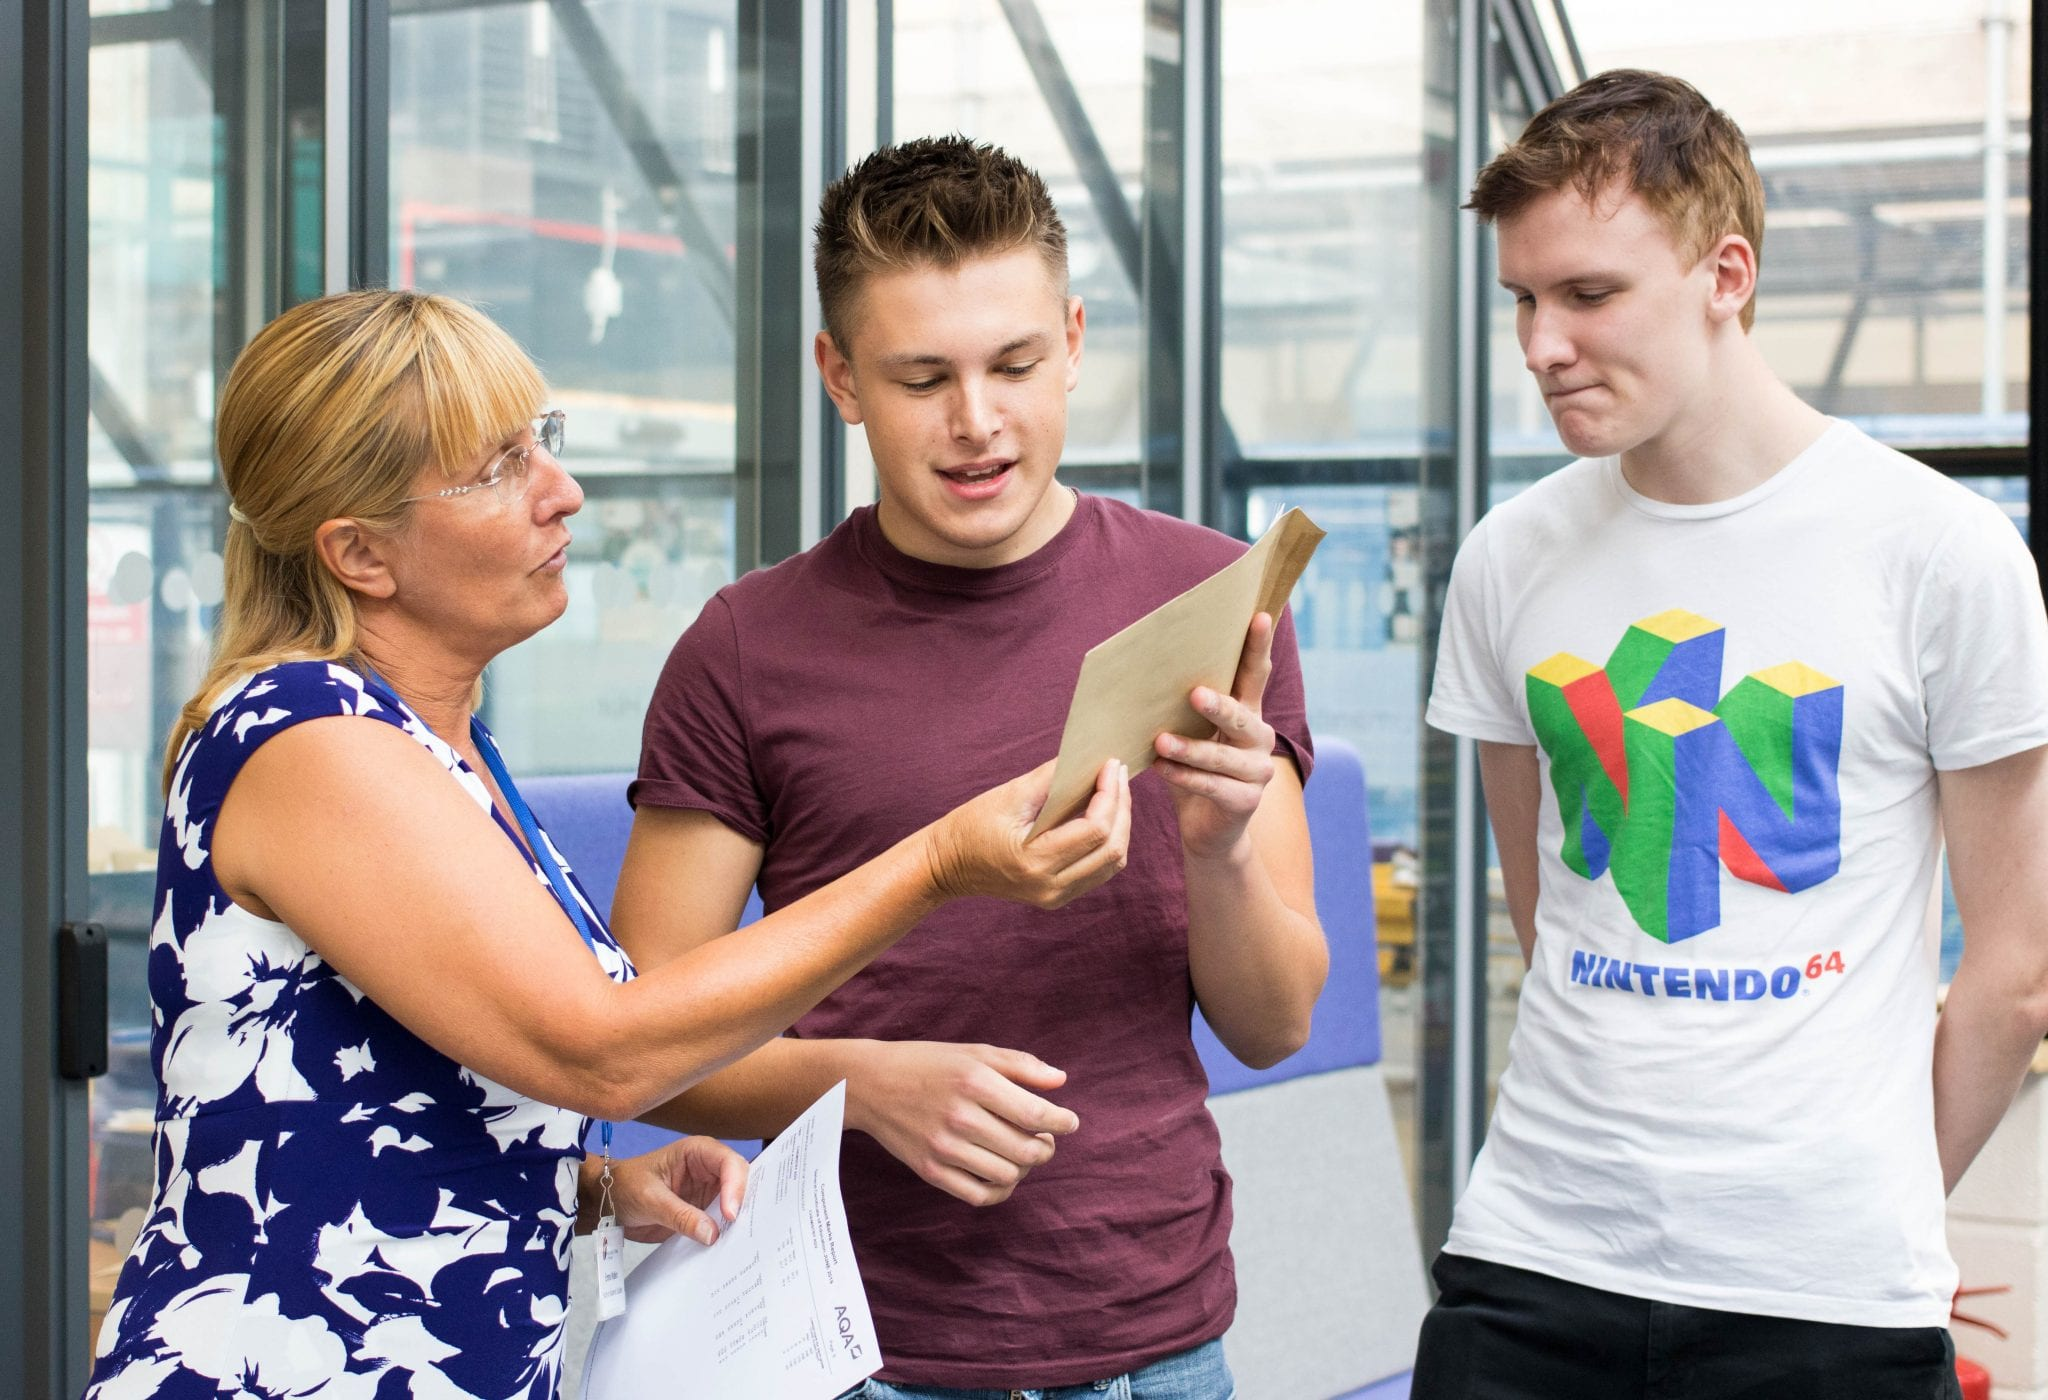 Lecturer chats with their students as they get their A level results